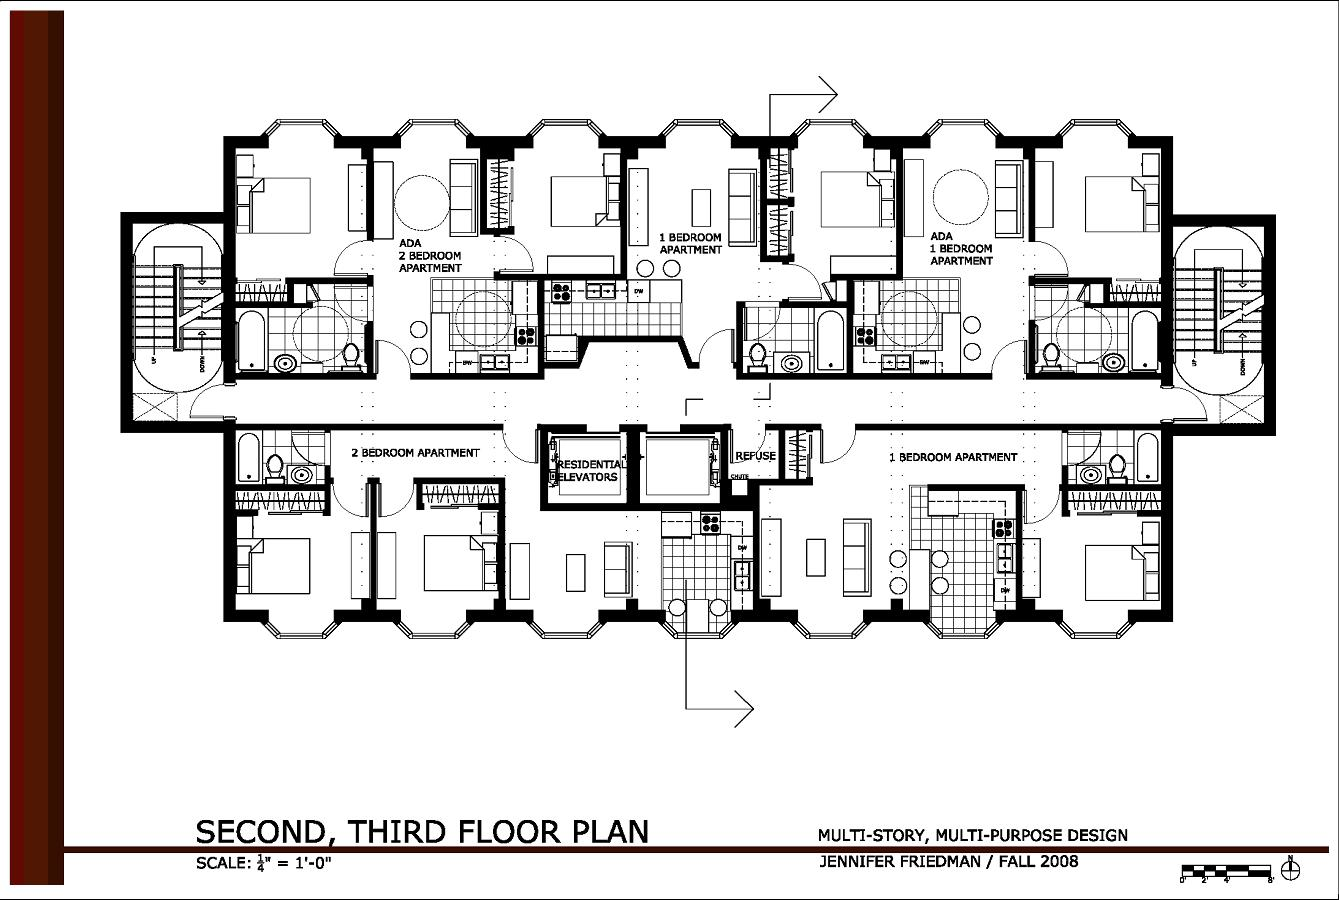 Multi story multi purpose design by jennifer friedman at for Two story office building plans